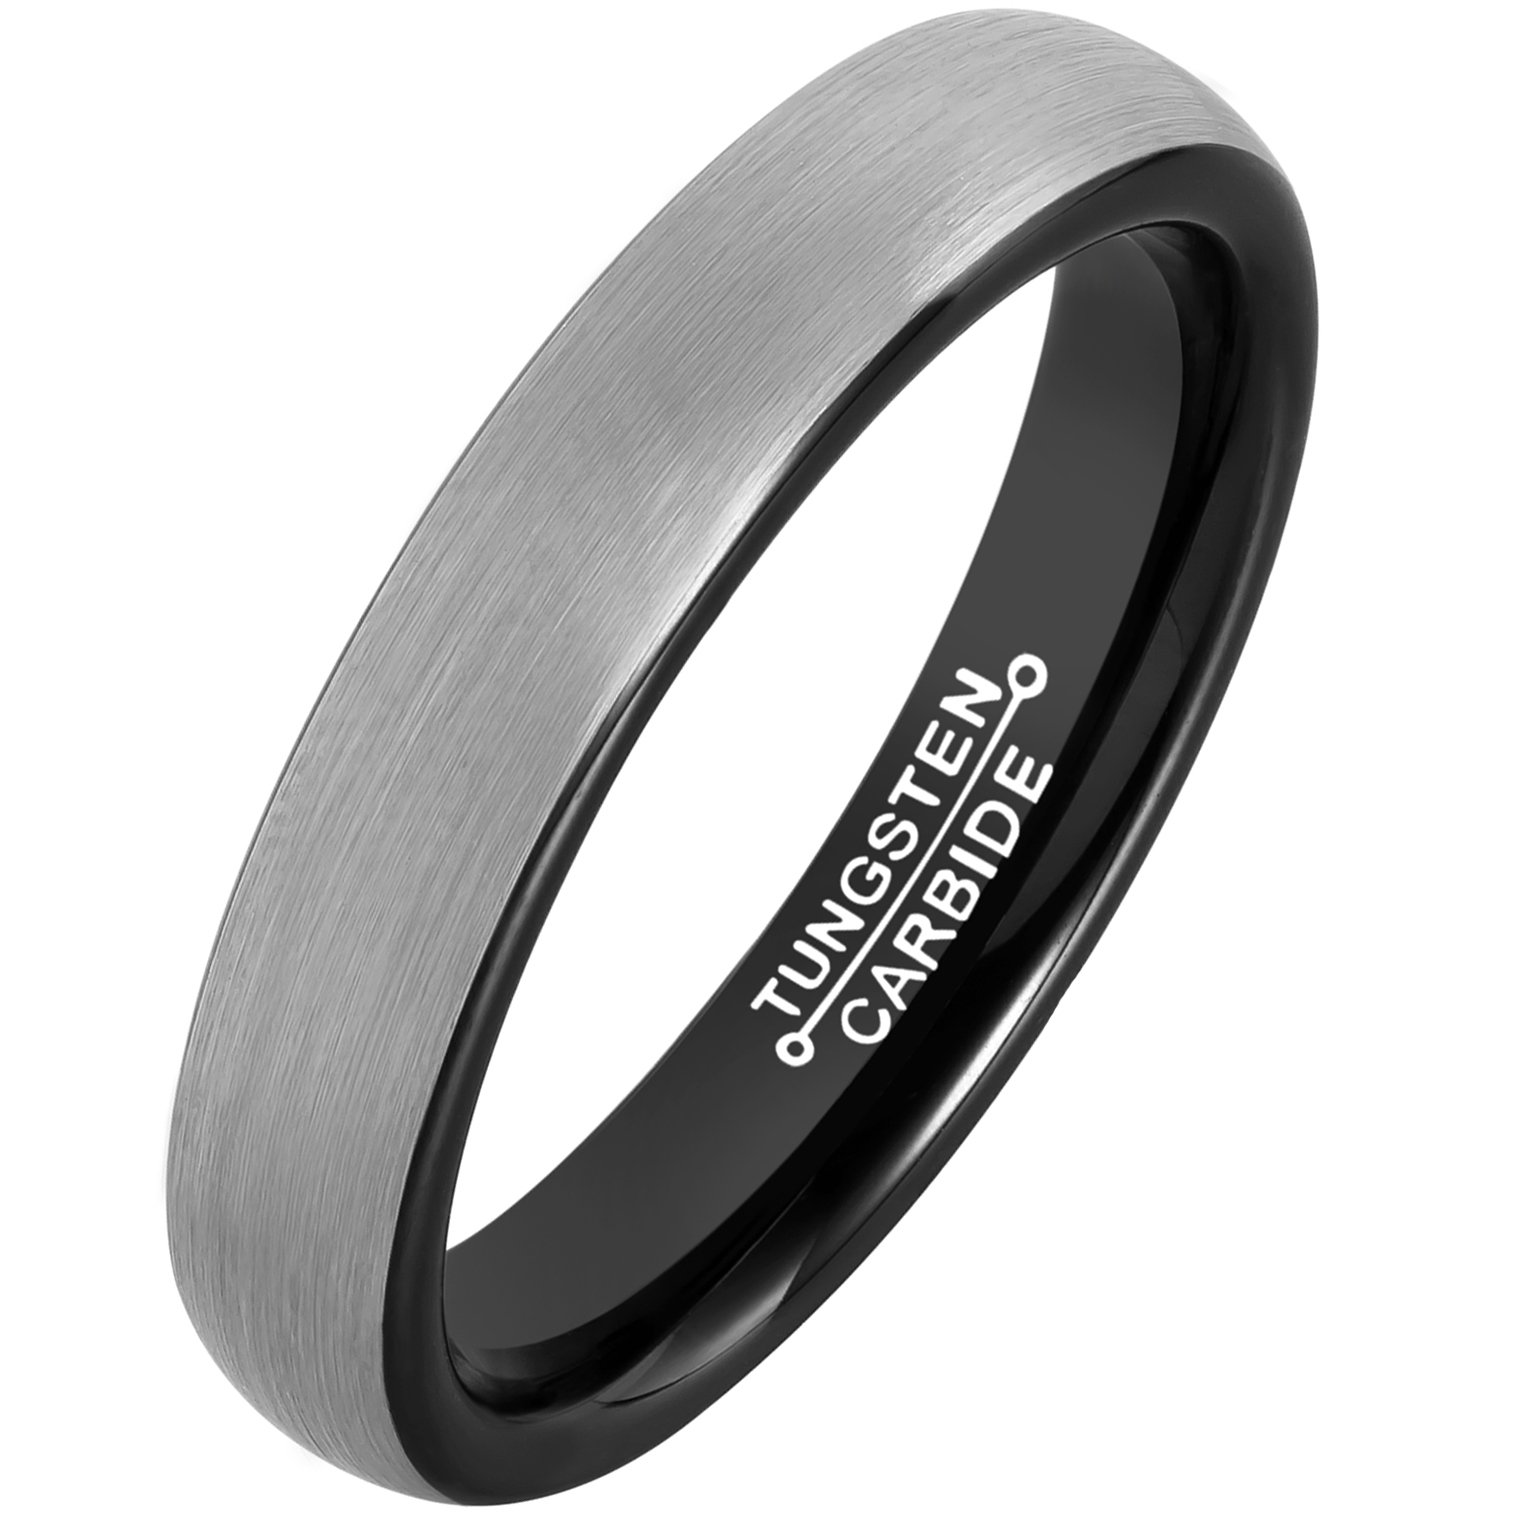 MNH Mens Rings Tungsten Carbide Black Plated Women Wedding Engagement Band Comfort Fit Matte Finish